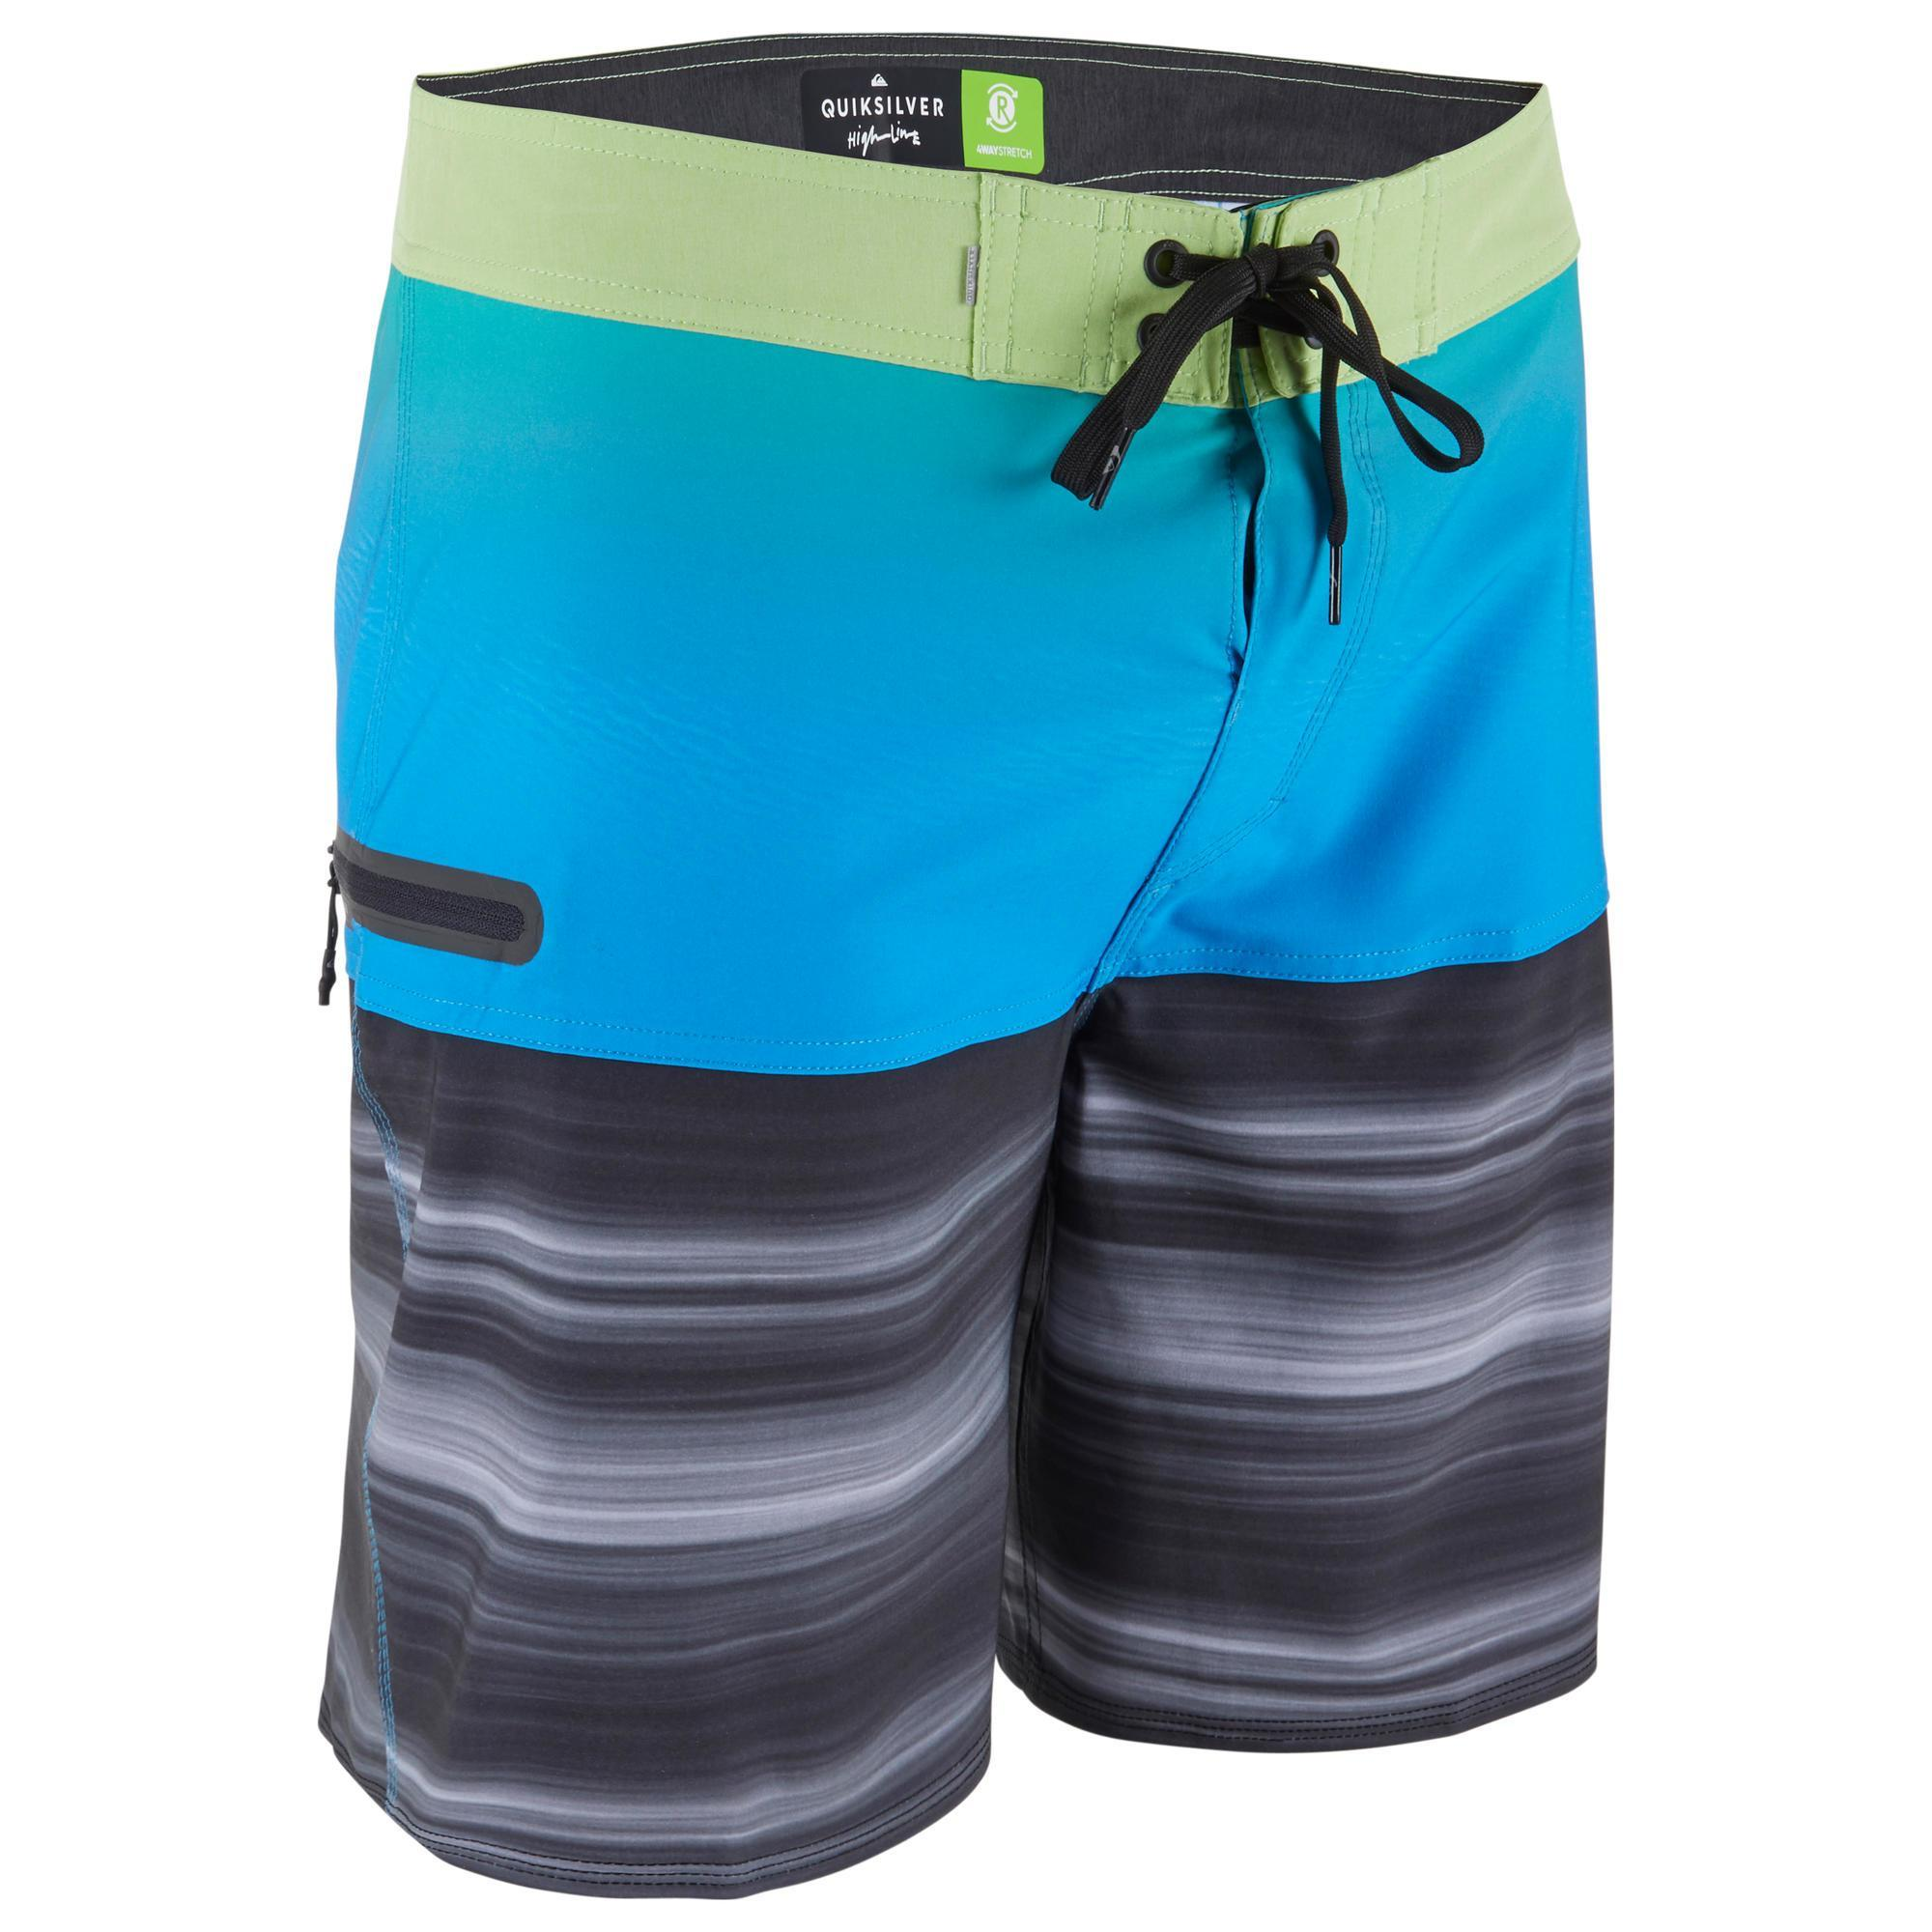 Quiksilver Zwembroek Heren.Surf Boardshorts Heren Decathlon